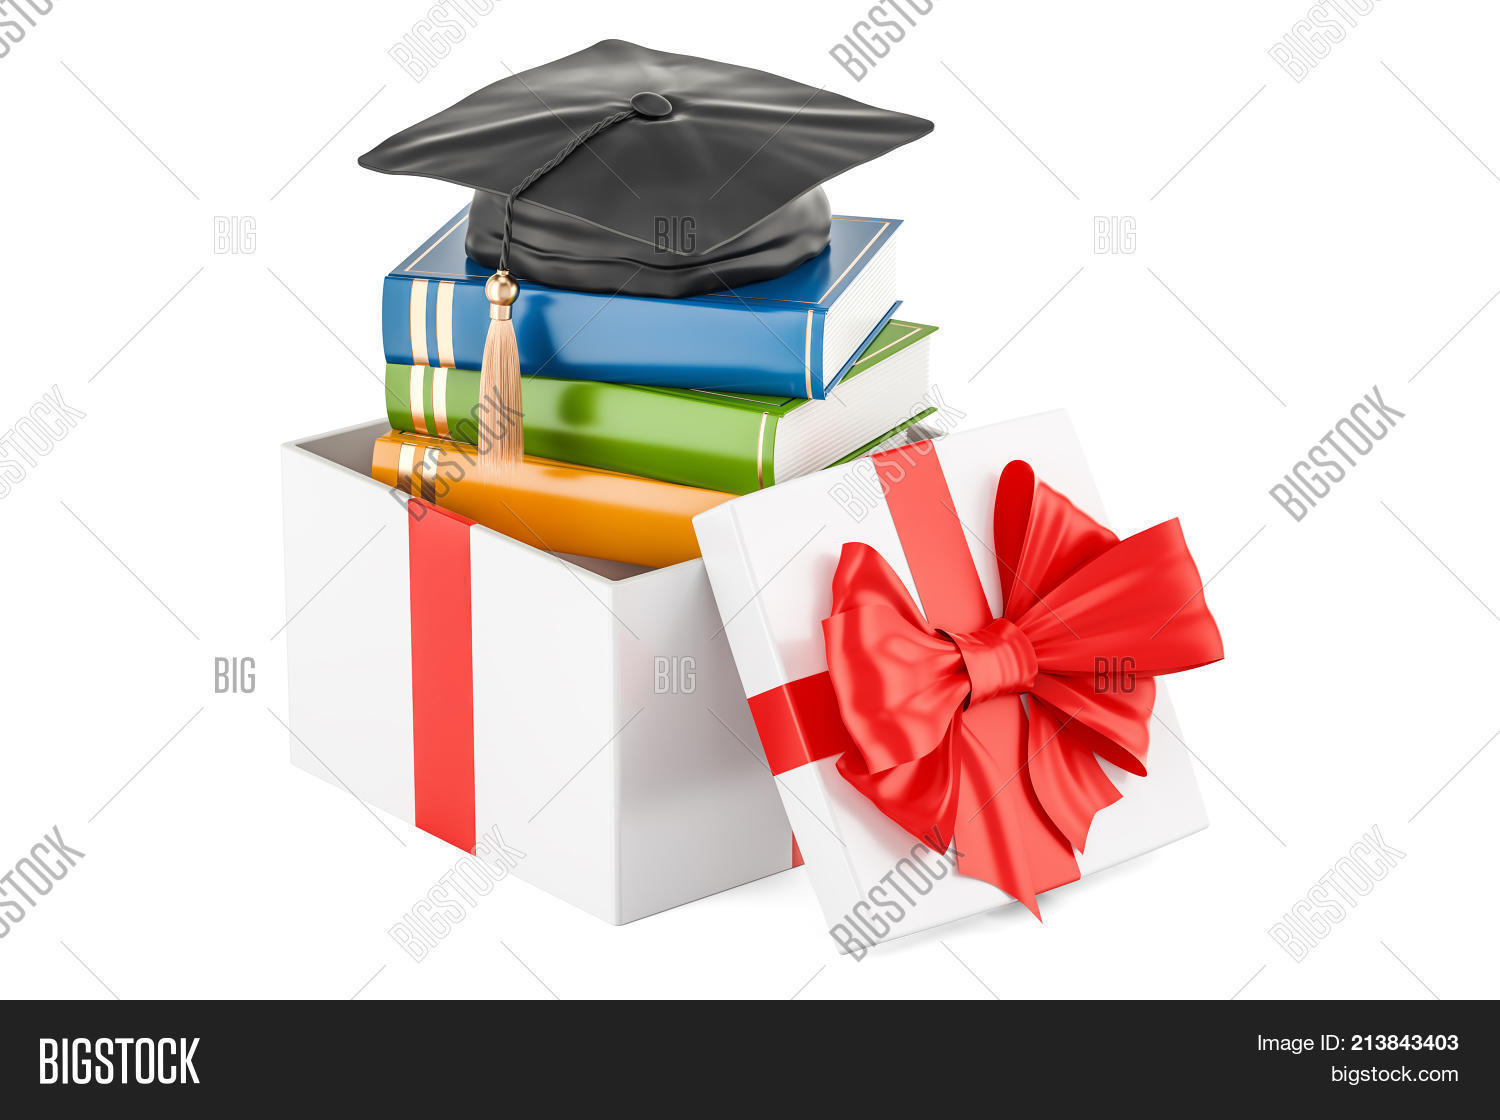 3d,background,birthday,bonus,books,bow,box,cap,celebration,college,concept,congratulation,cut,diploma,educate,education,educational,free,fund,gift,graduate,grant,greeting,illustration,isolated,learning,object,present,prize,rendering,ribbon,scholarship,school,student,study,surprise,university,white,wrapping